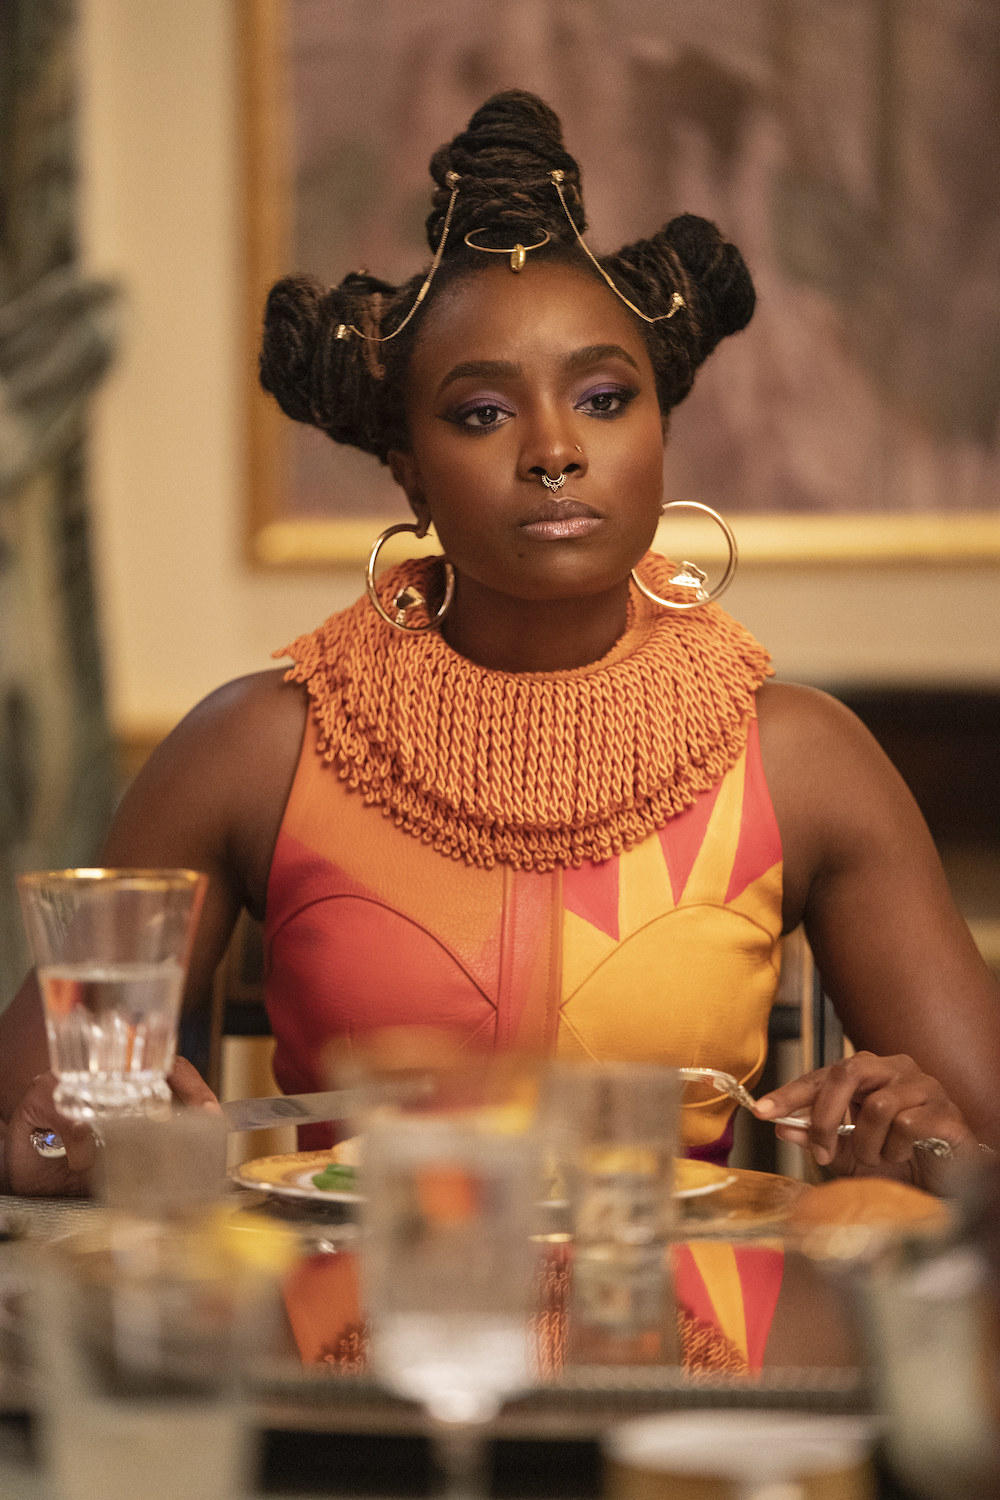 KiKi Layne sits at a dining table in COMING 2 AMERICA